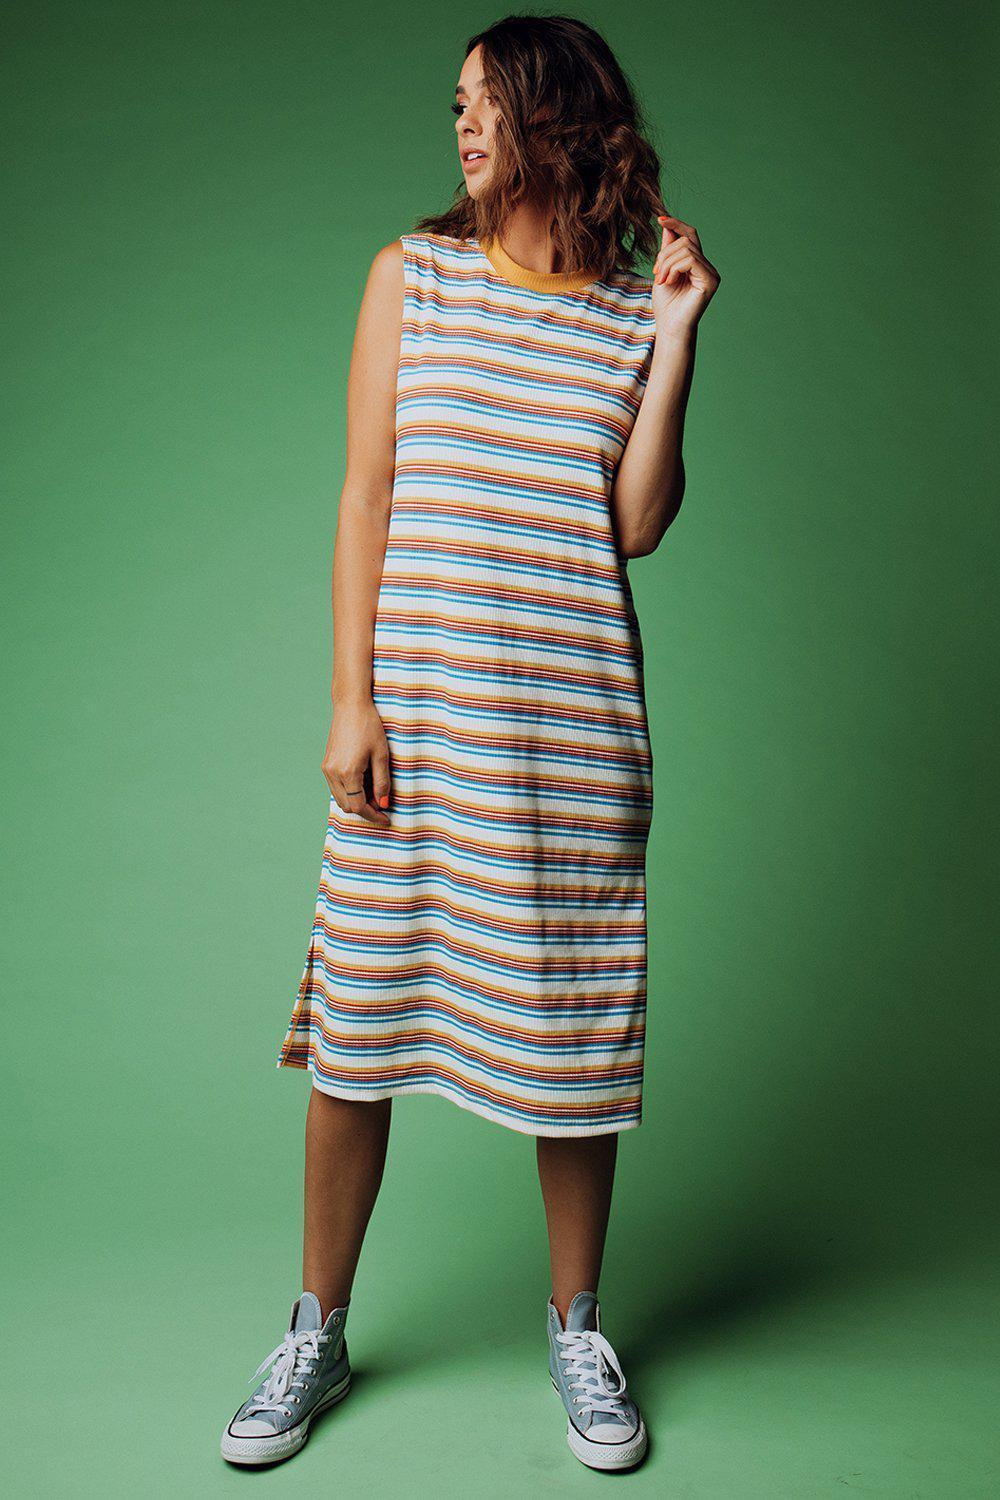 best_seller, Summer Sun Midi Dress - FINAL SALE, Dress, women's clothing, dresses, skirts, coats, jackets, shoes, boots, tops, tee shirts, jeans, free people, levi's, rollas, jumpsuits, bottoms, tops, sweaters, pullovers, pants, shorts, sweats,.